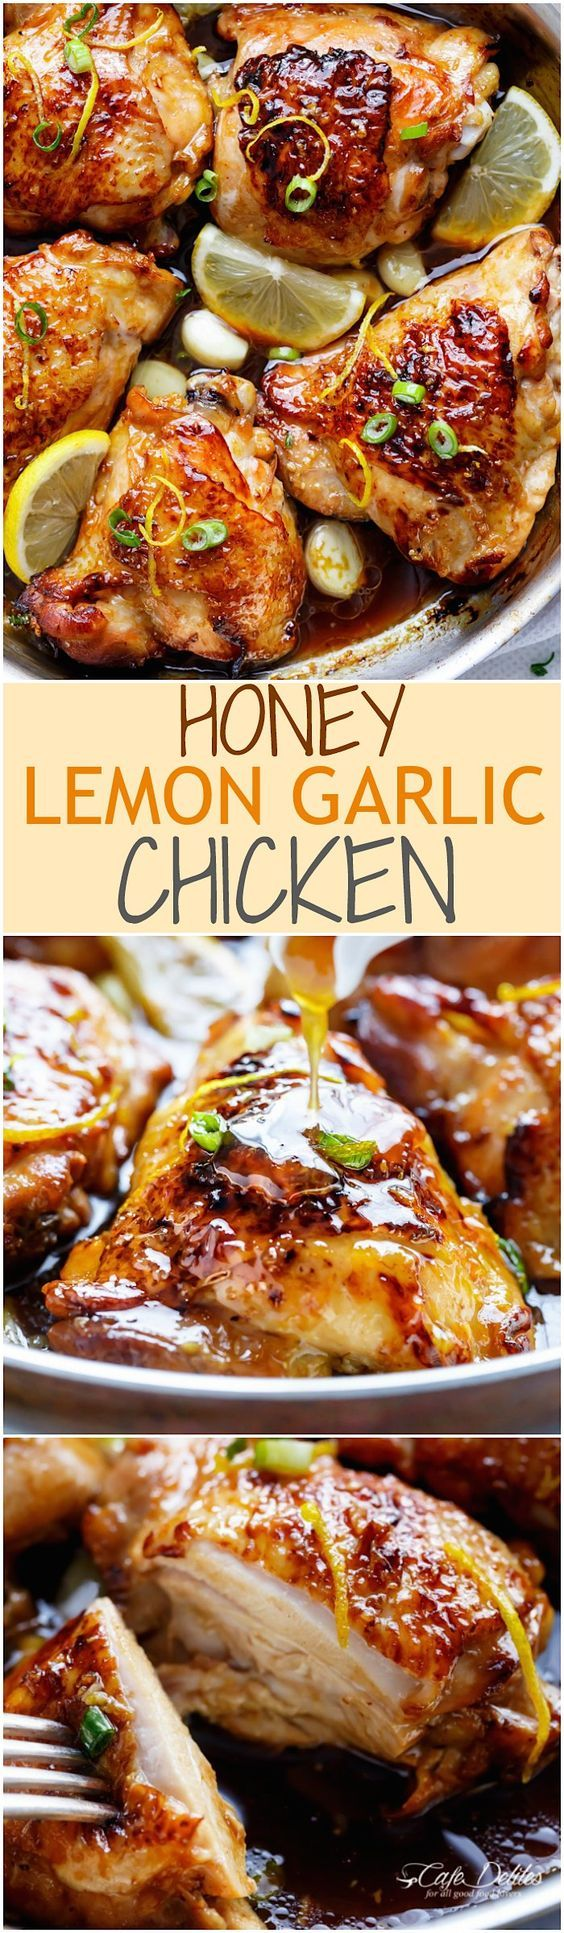 Elegant Juicy Honey Lemon Garlic Chicken with a crispy skin and a sweet sticky sauce with